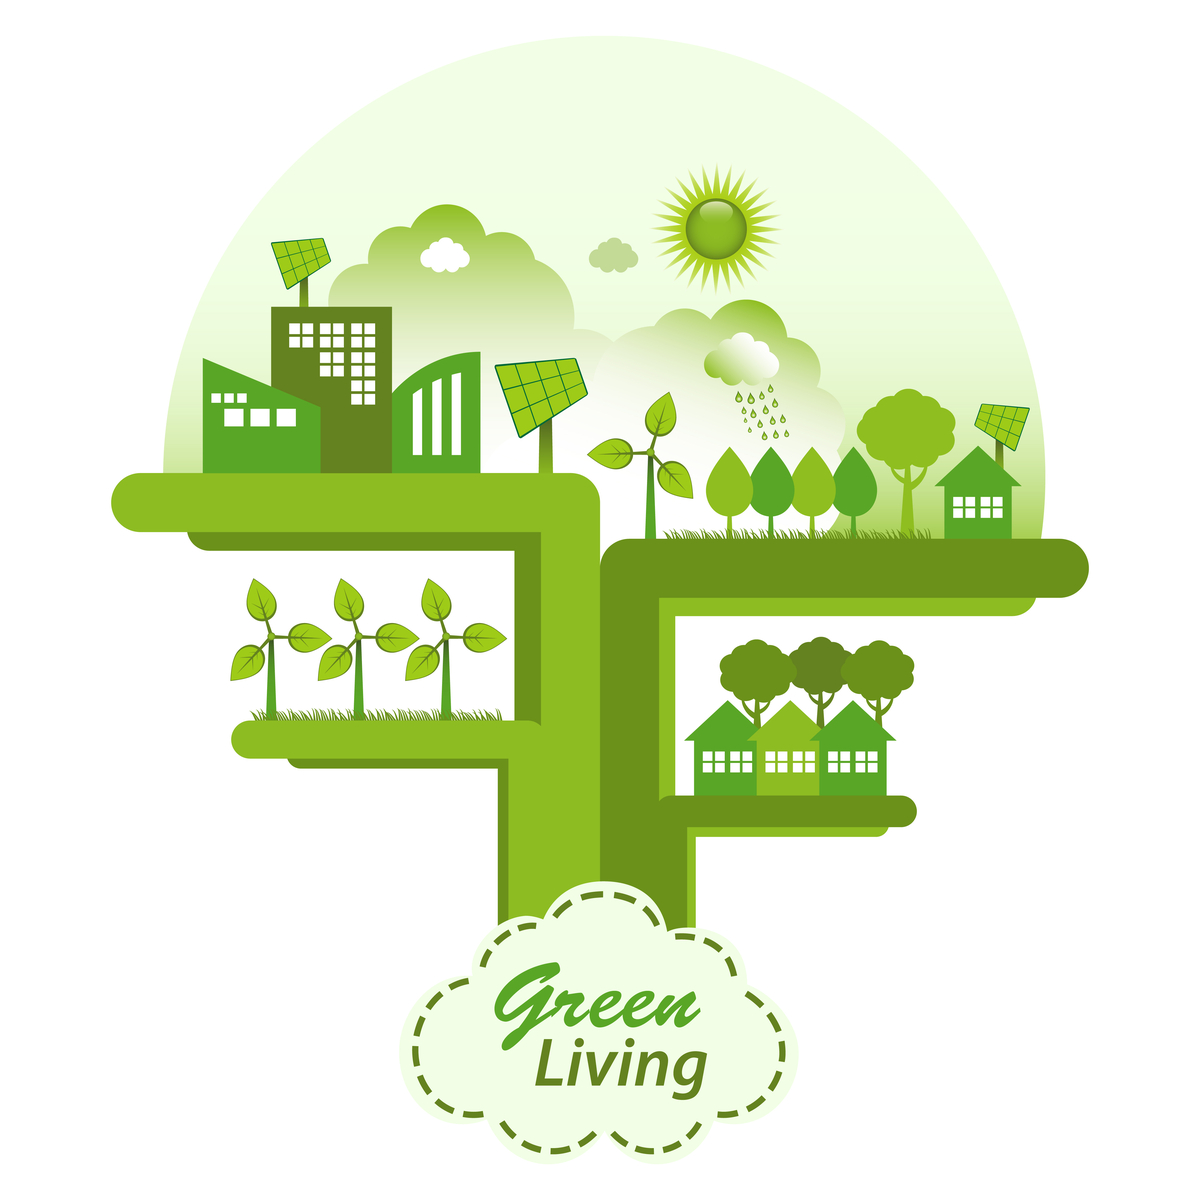 Green Living icon